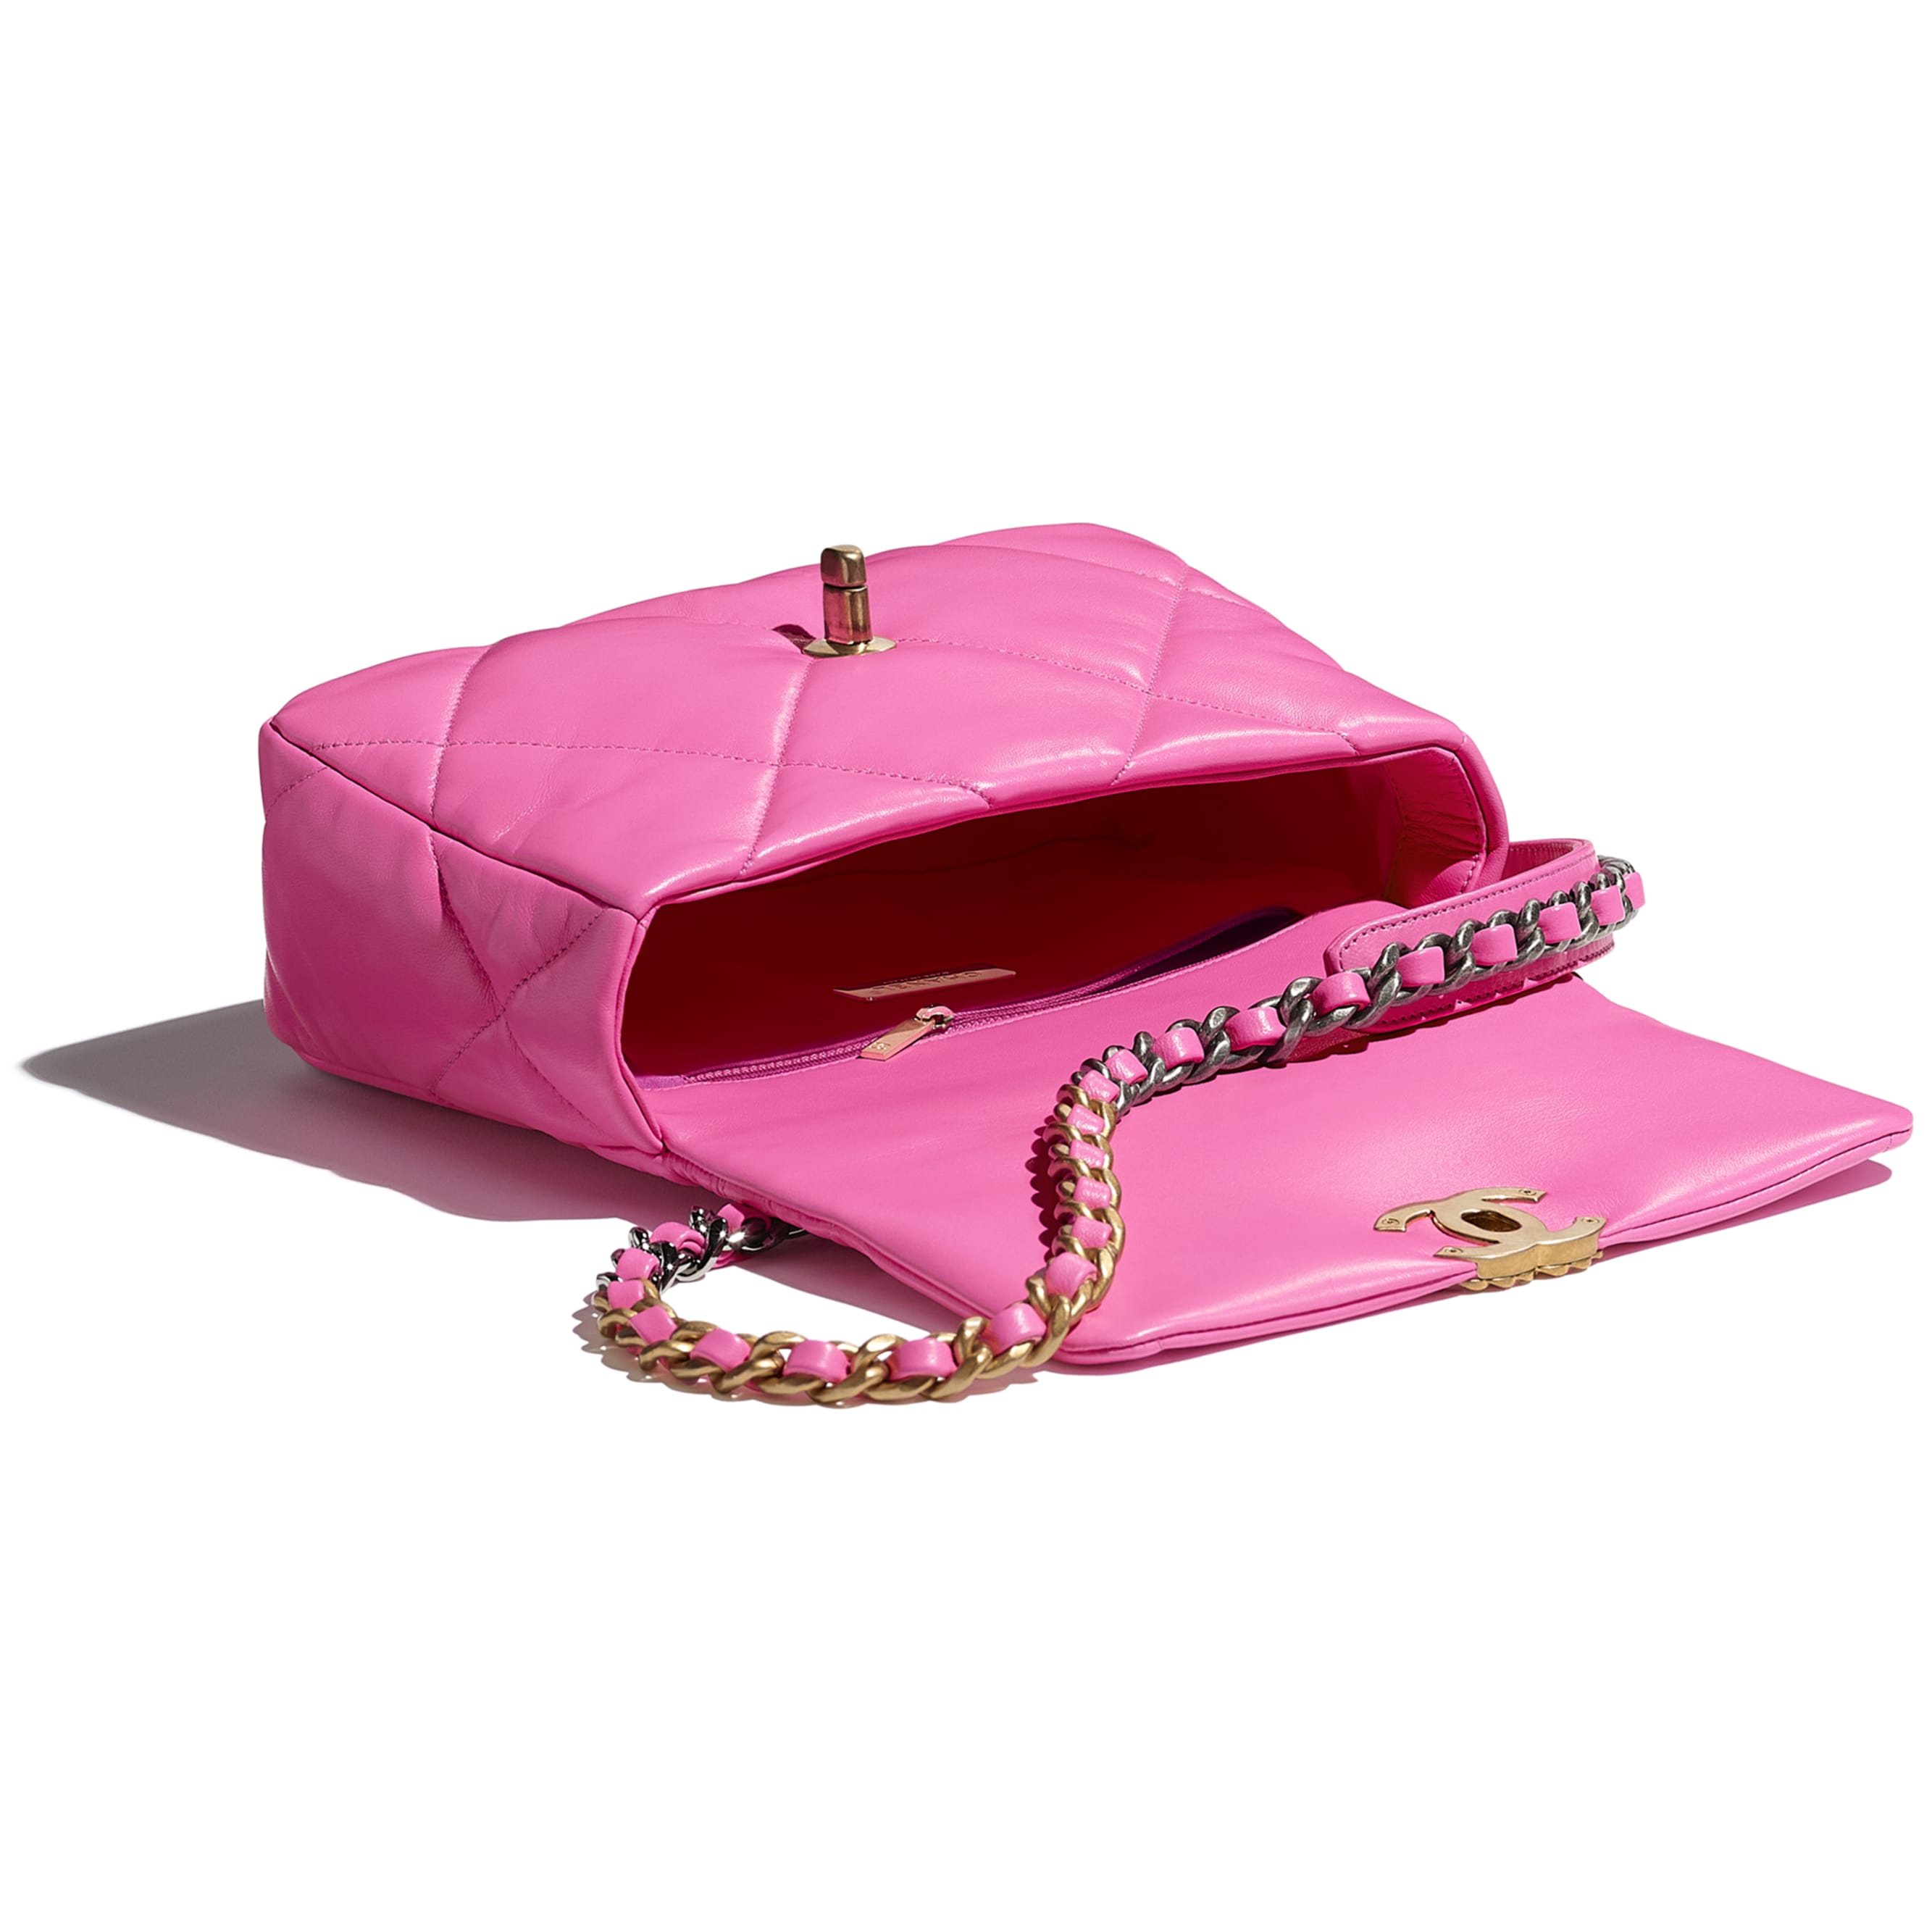 CHANEL 19 Handbag - Neon Pink - Shiny Lambskin, Gold-Tone, Silver-Tone & Ruthenium-Finish Metal - CHANEL - Other view - see standard sized version